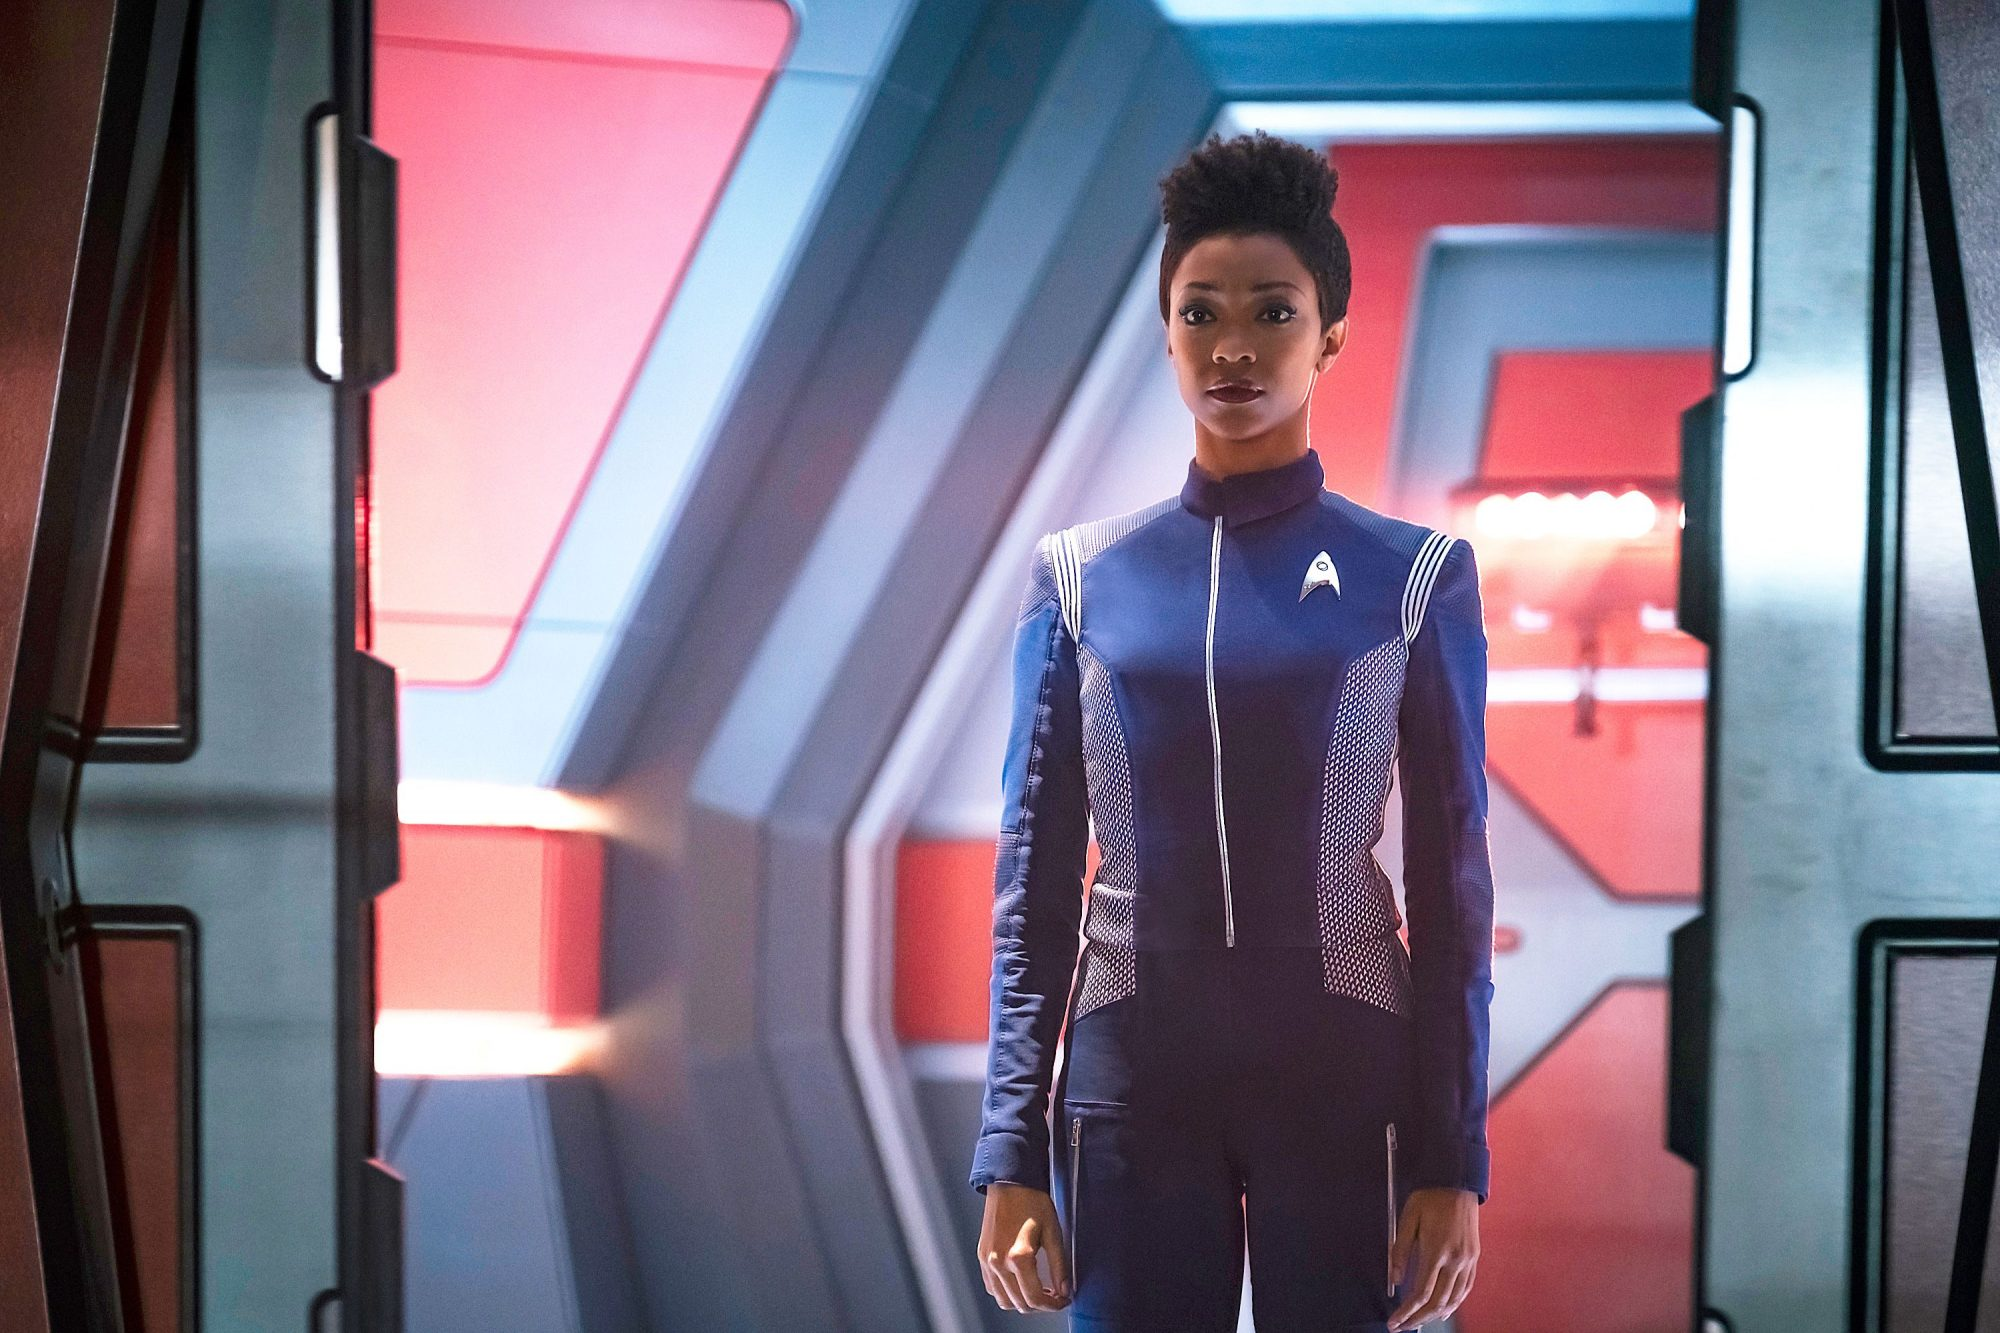 Star Trek Discovery - 2020 Most Anticipated Sci-Fi Series